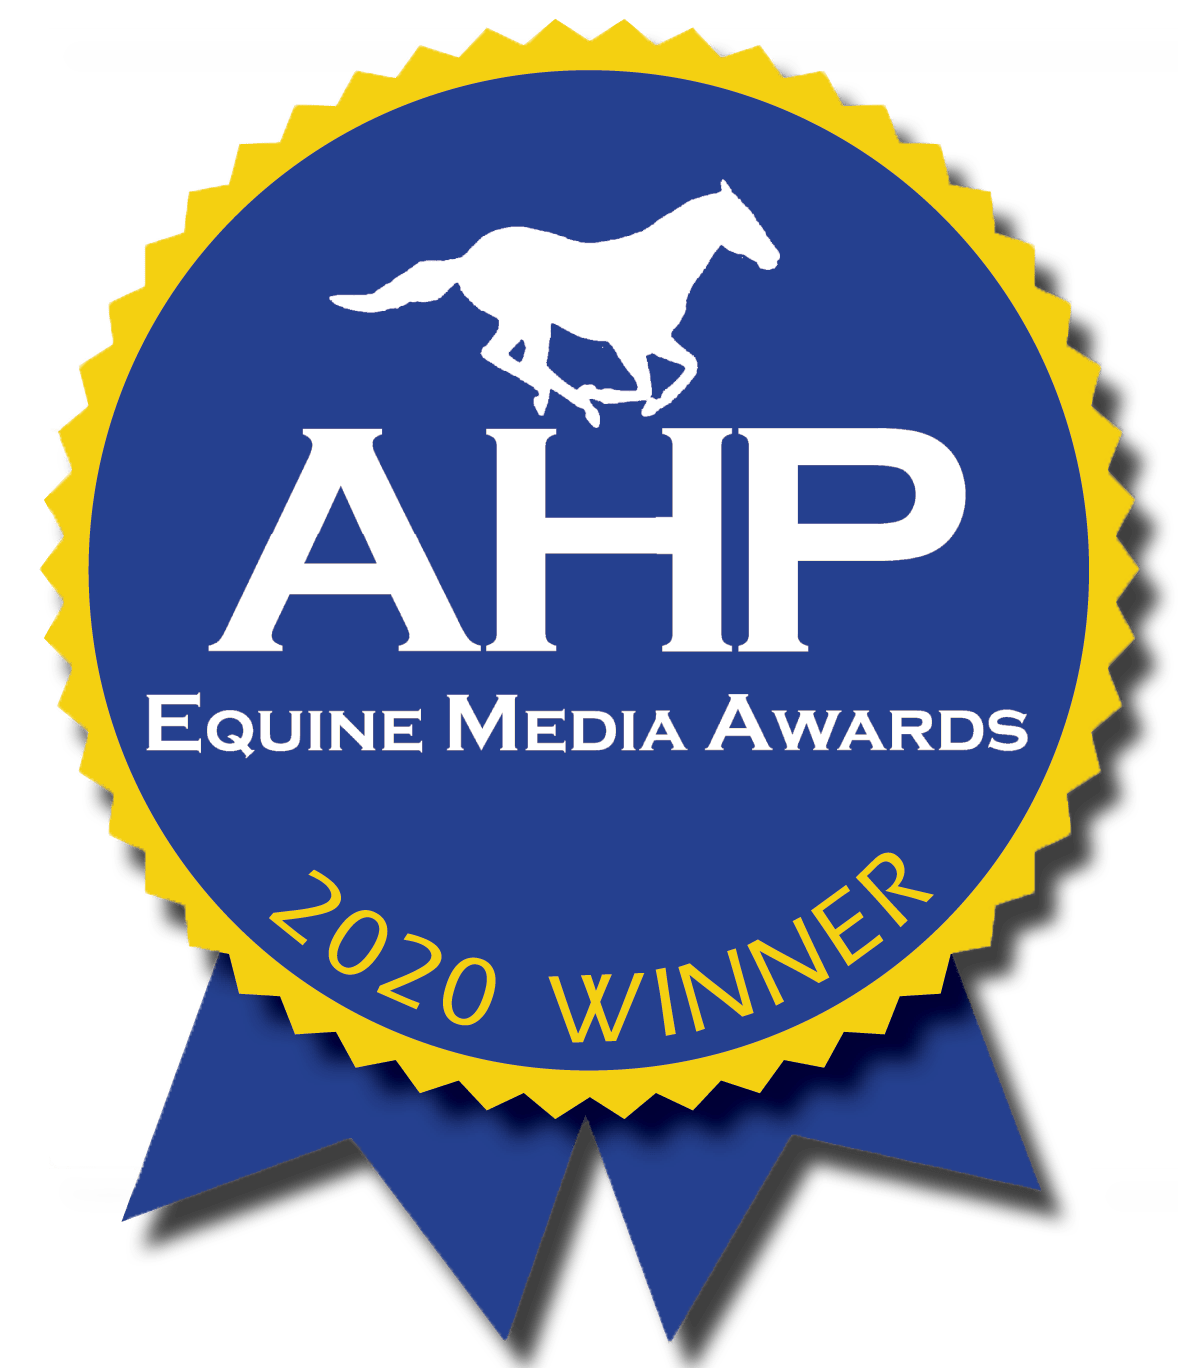 Equinews award for Buest Business Equine-Related Website from the American Horse Publications